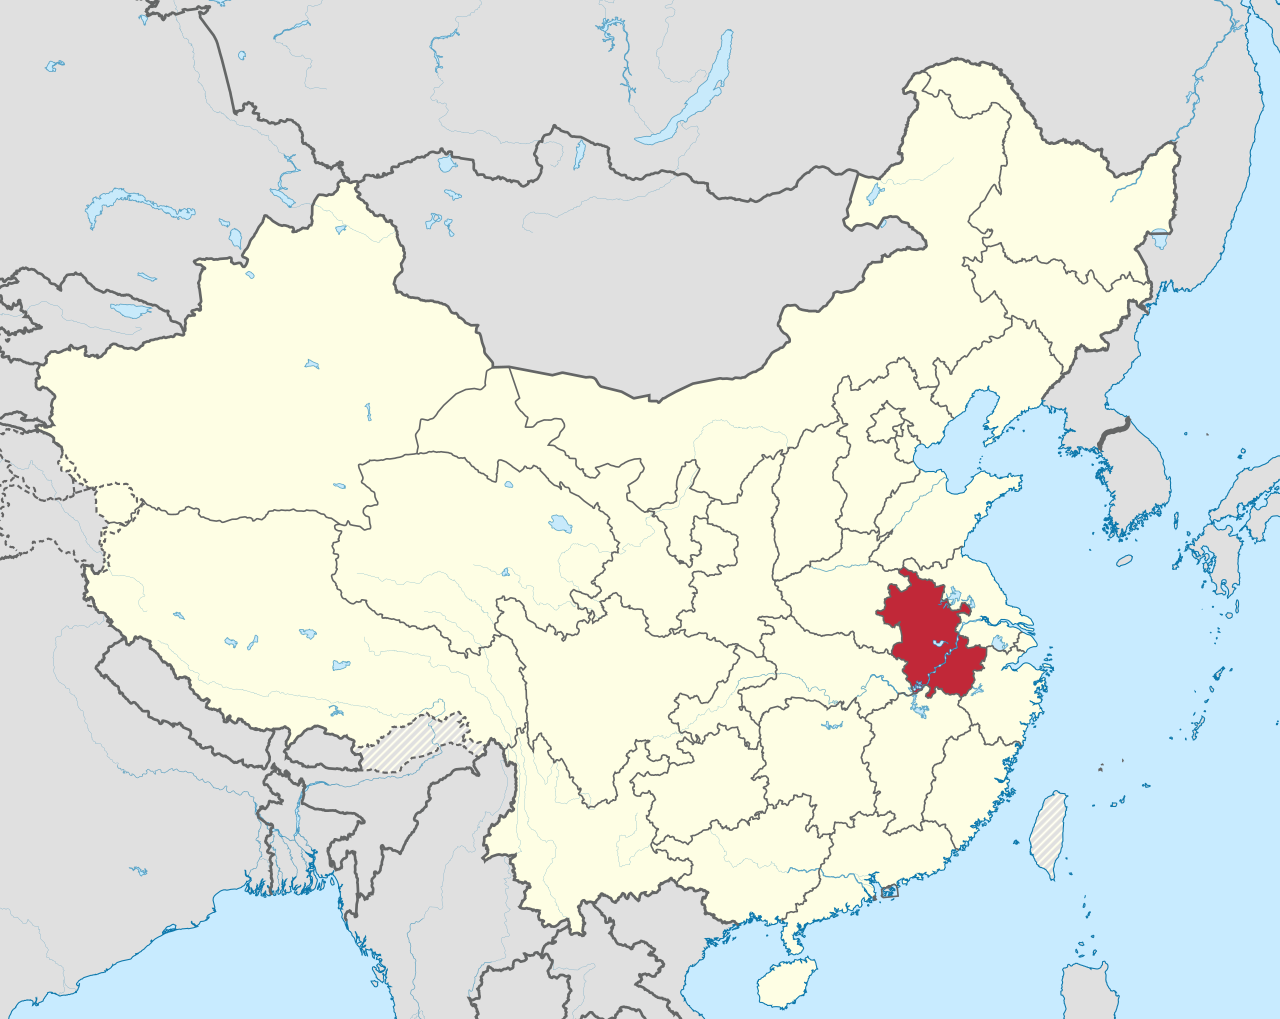 a map of china with a red region outlined marking the province of Anhui.